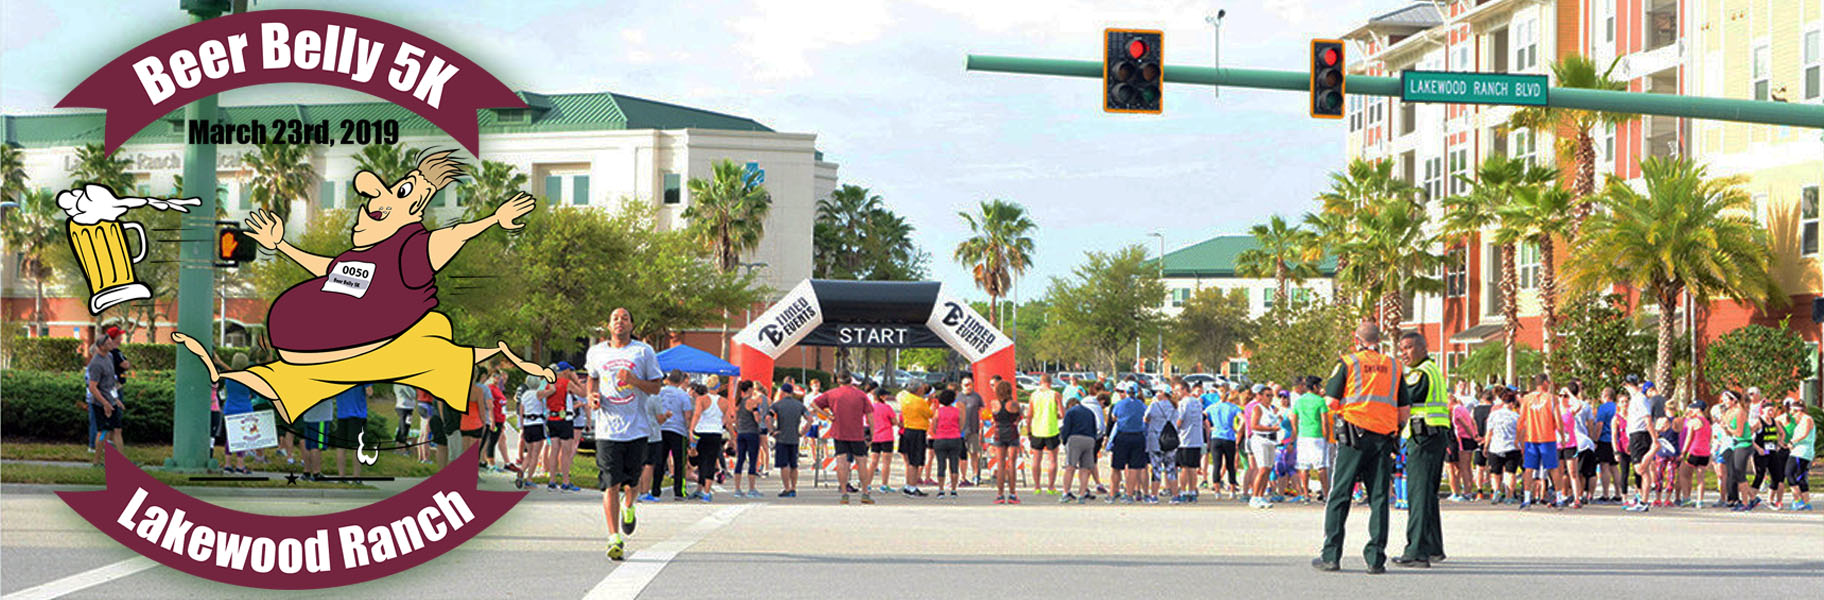 Register for the Beer Belly 5K Run